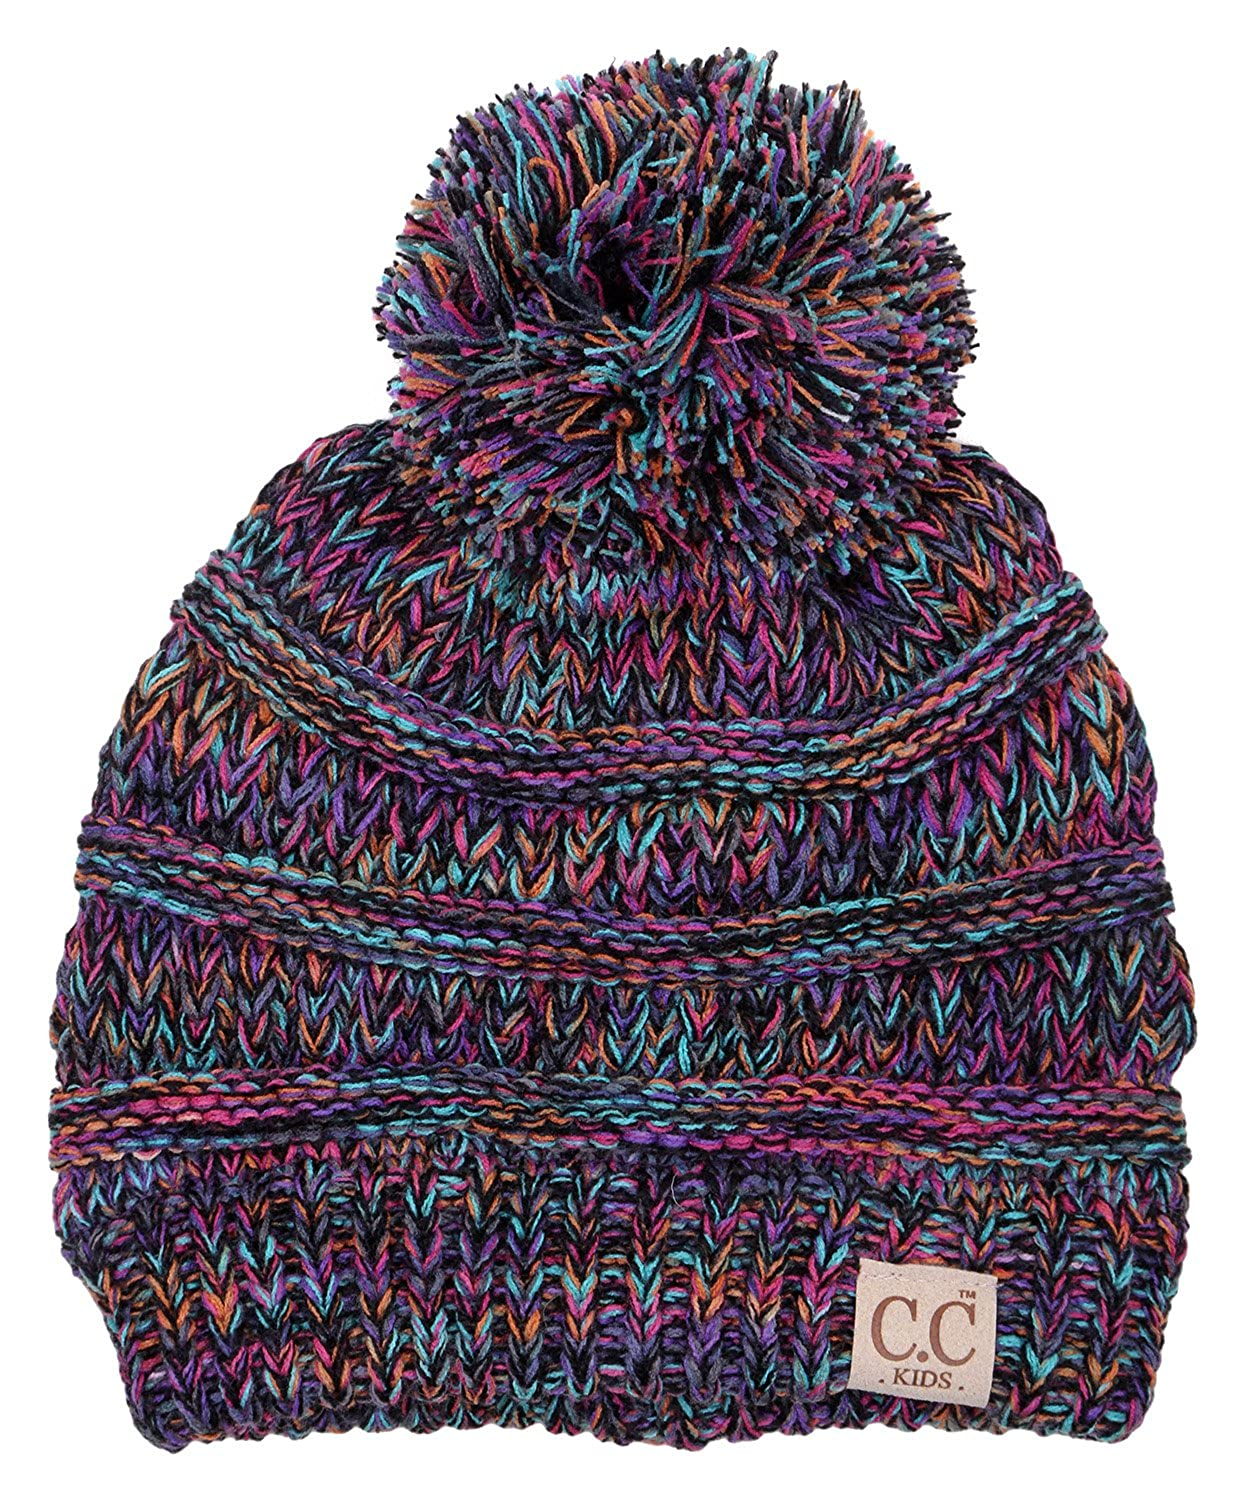 FunkyJunque Funky Junque's CC Kids Baby Toddler Cable Knit Children's Pom Winter Hat Beanie